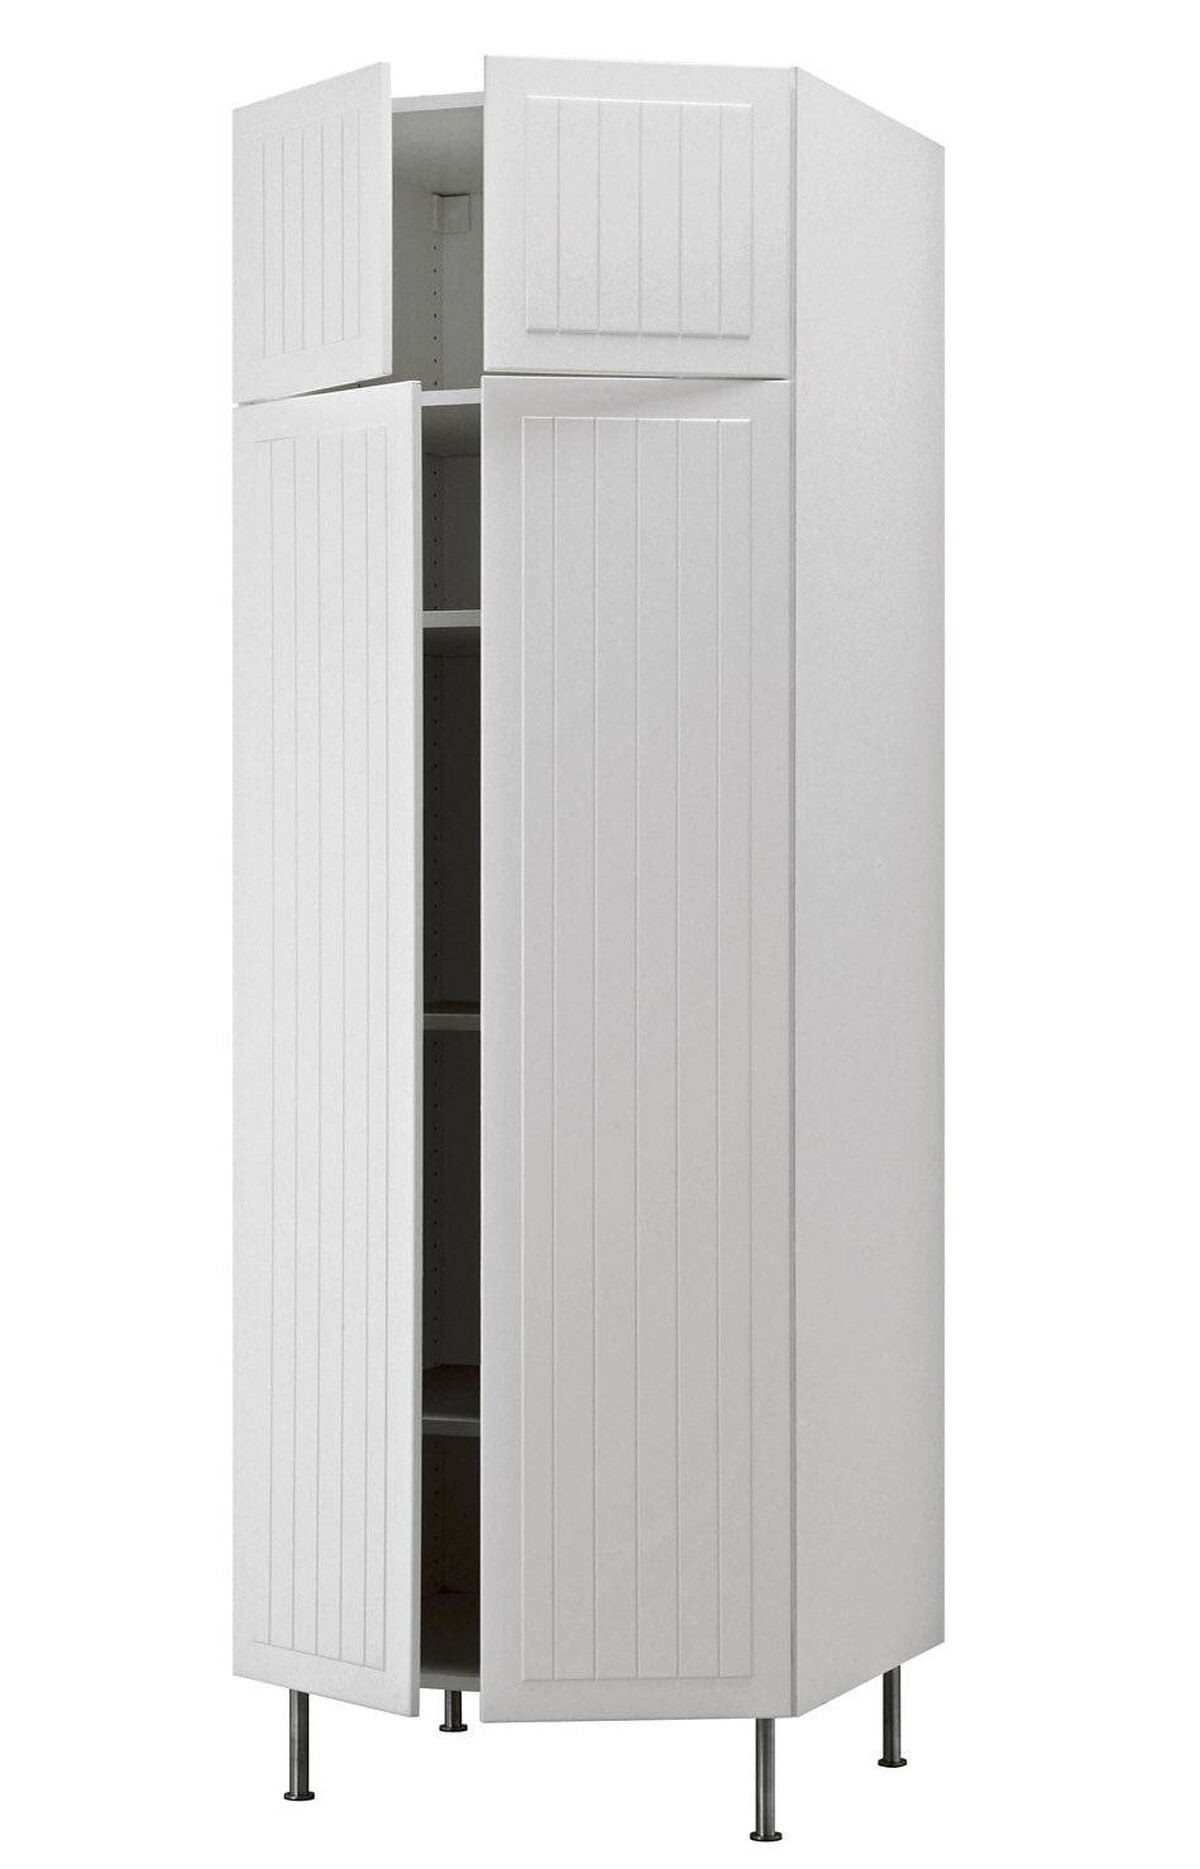 IKEA's Akurum High Cabinet is customizable to your storage needs and is available in 2-door, 3-door and 4-door models, as well as various finishes from classic white to birch to high gloss. From $246 at IKEA (www.ikea.ca).